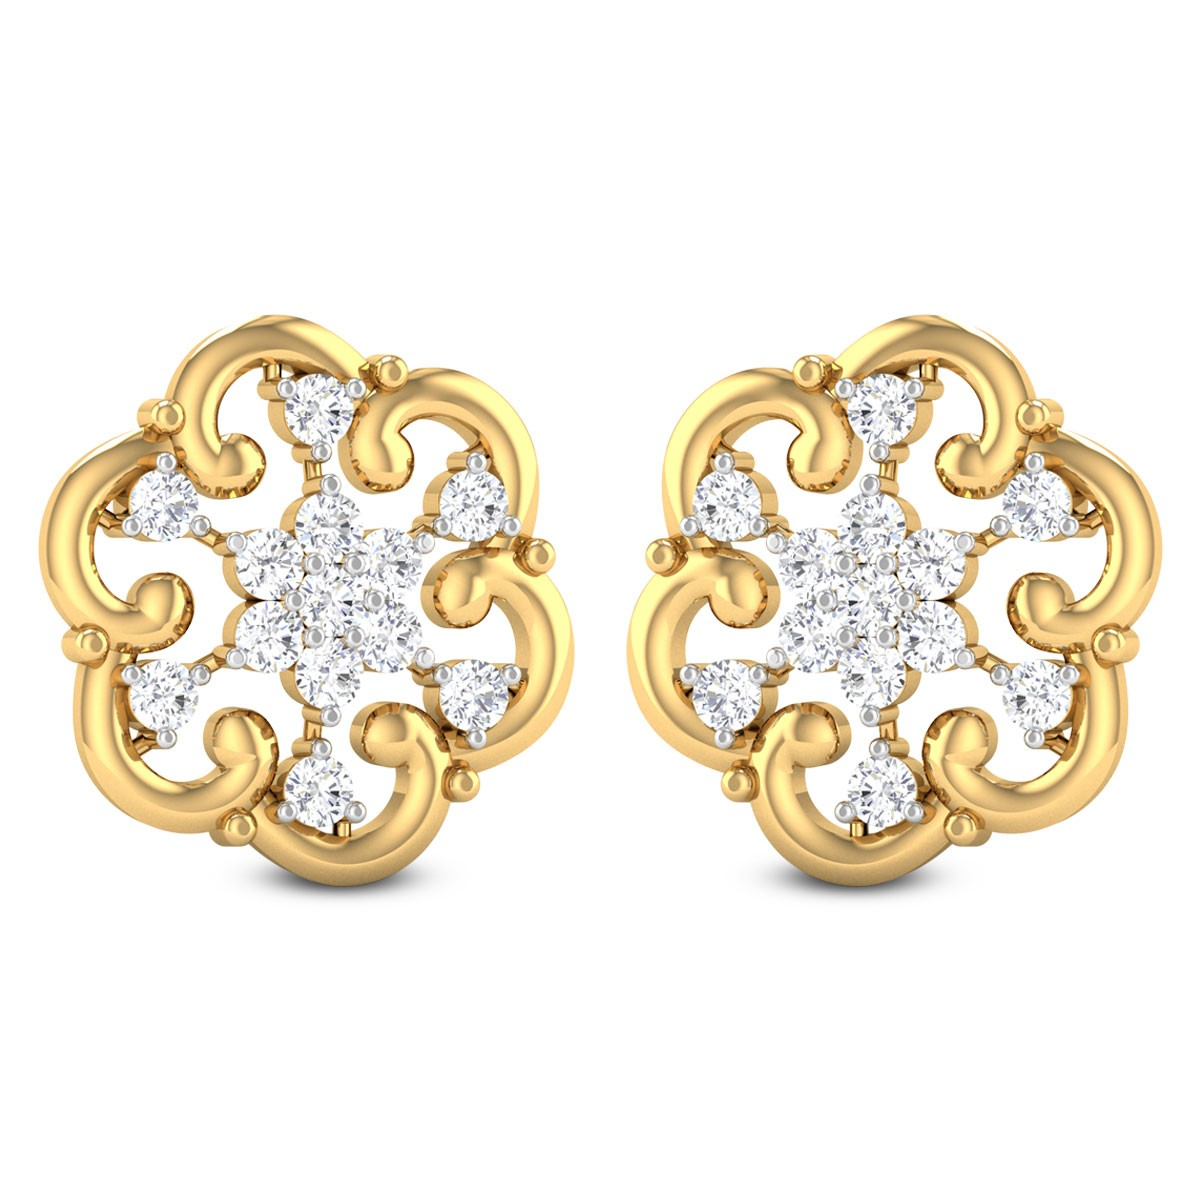 Embry Floral Diamond Stud Earrings